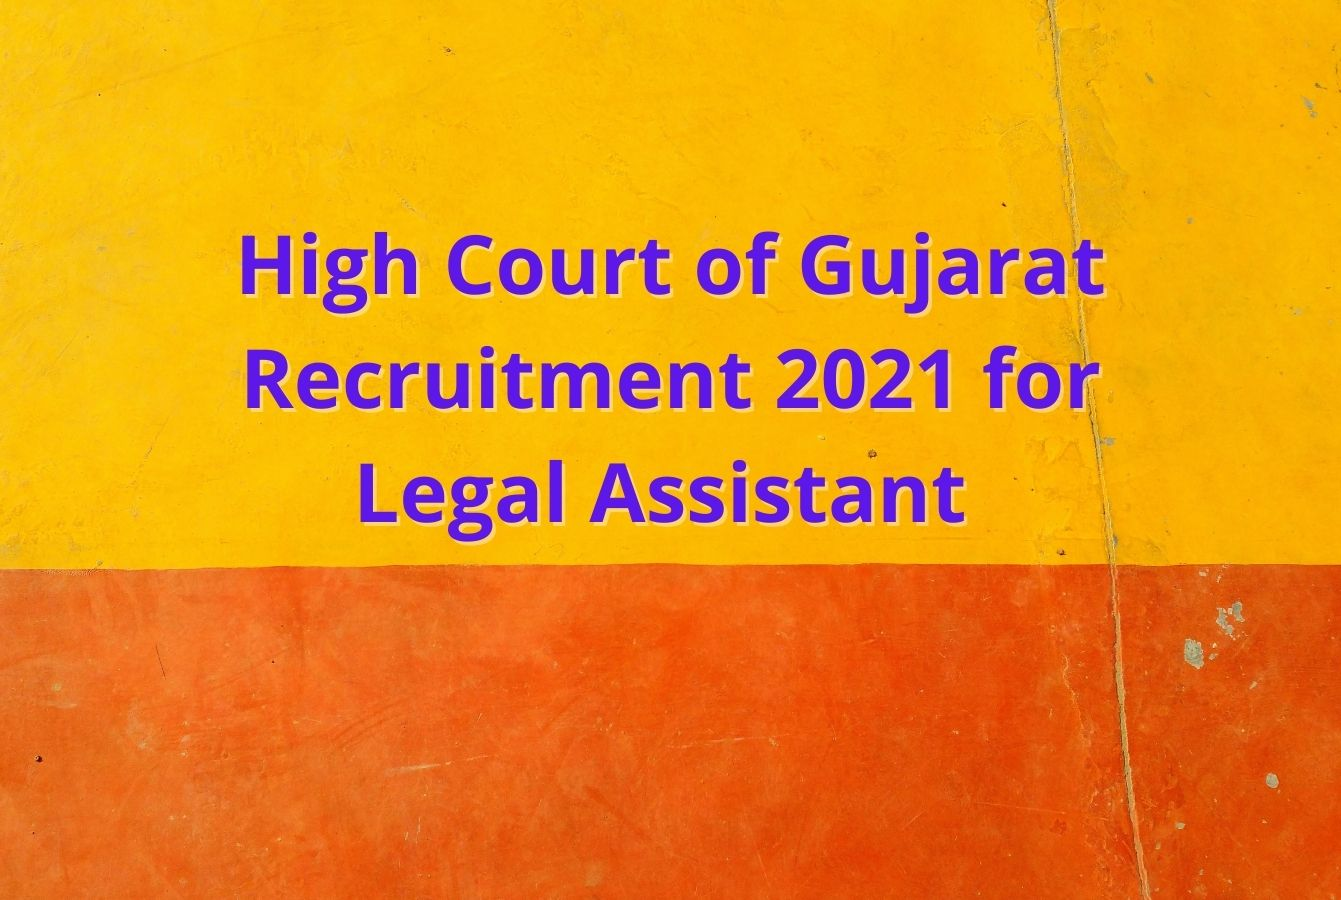 High Court of Gujarat Recruitment 2021 for Legal Assistant